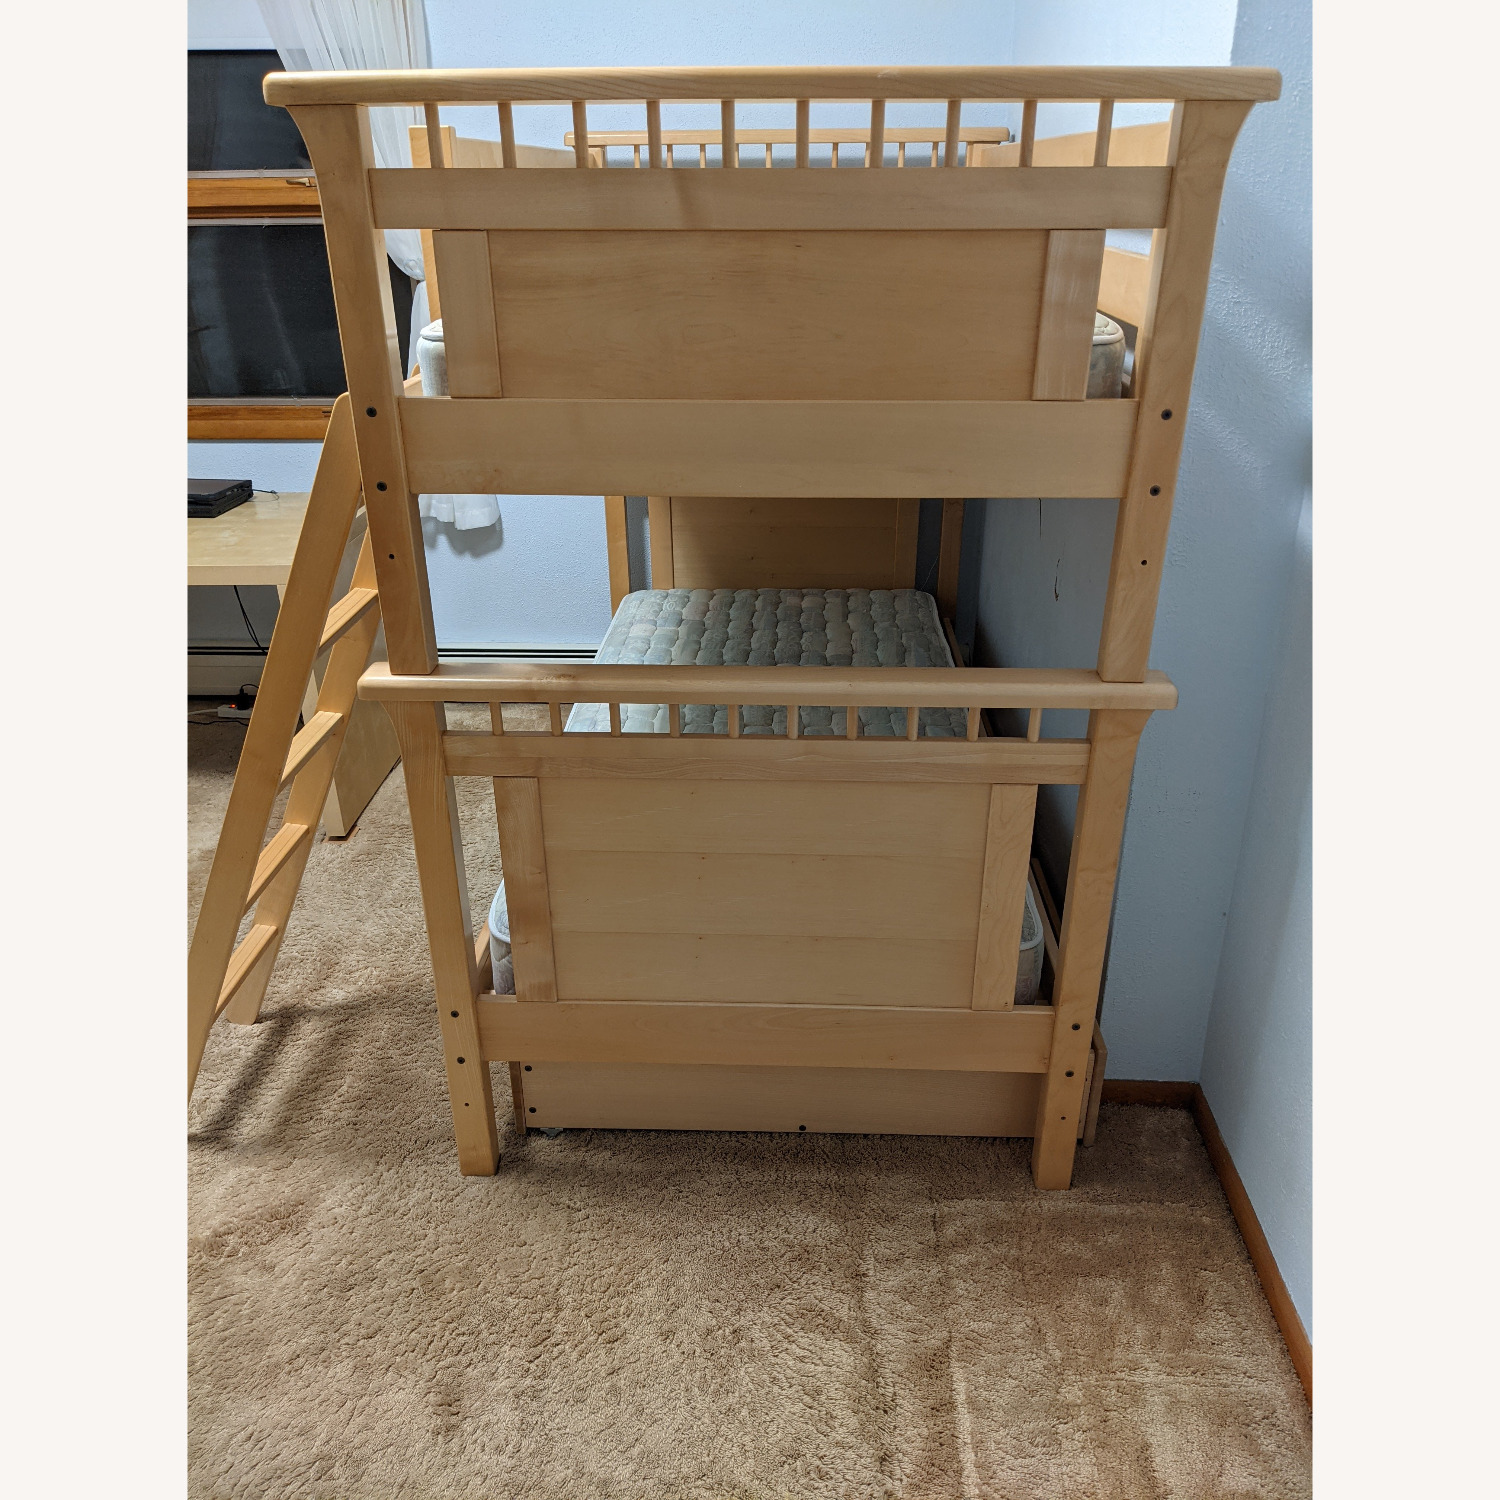 Solid Wood Bunk Beds w/ Under Bed Storage Drawers - image-3